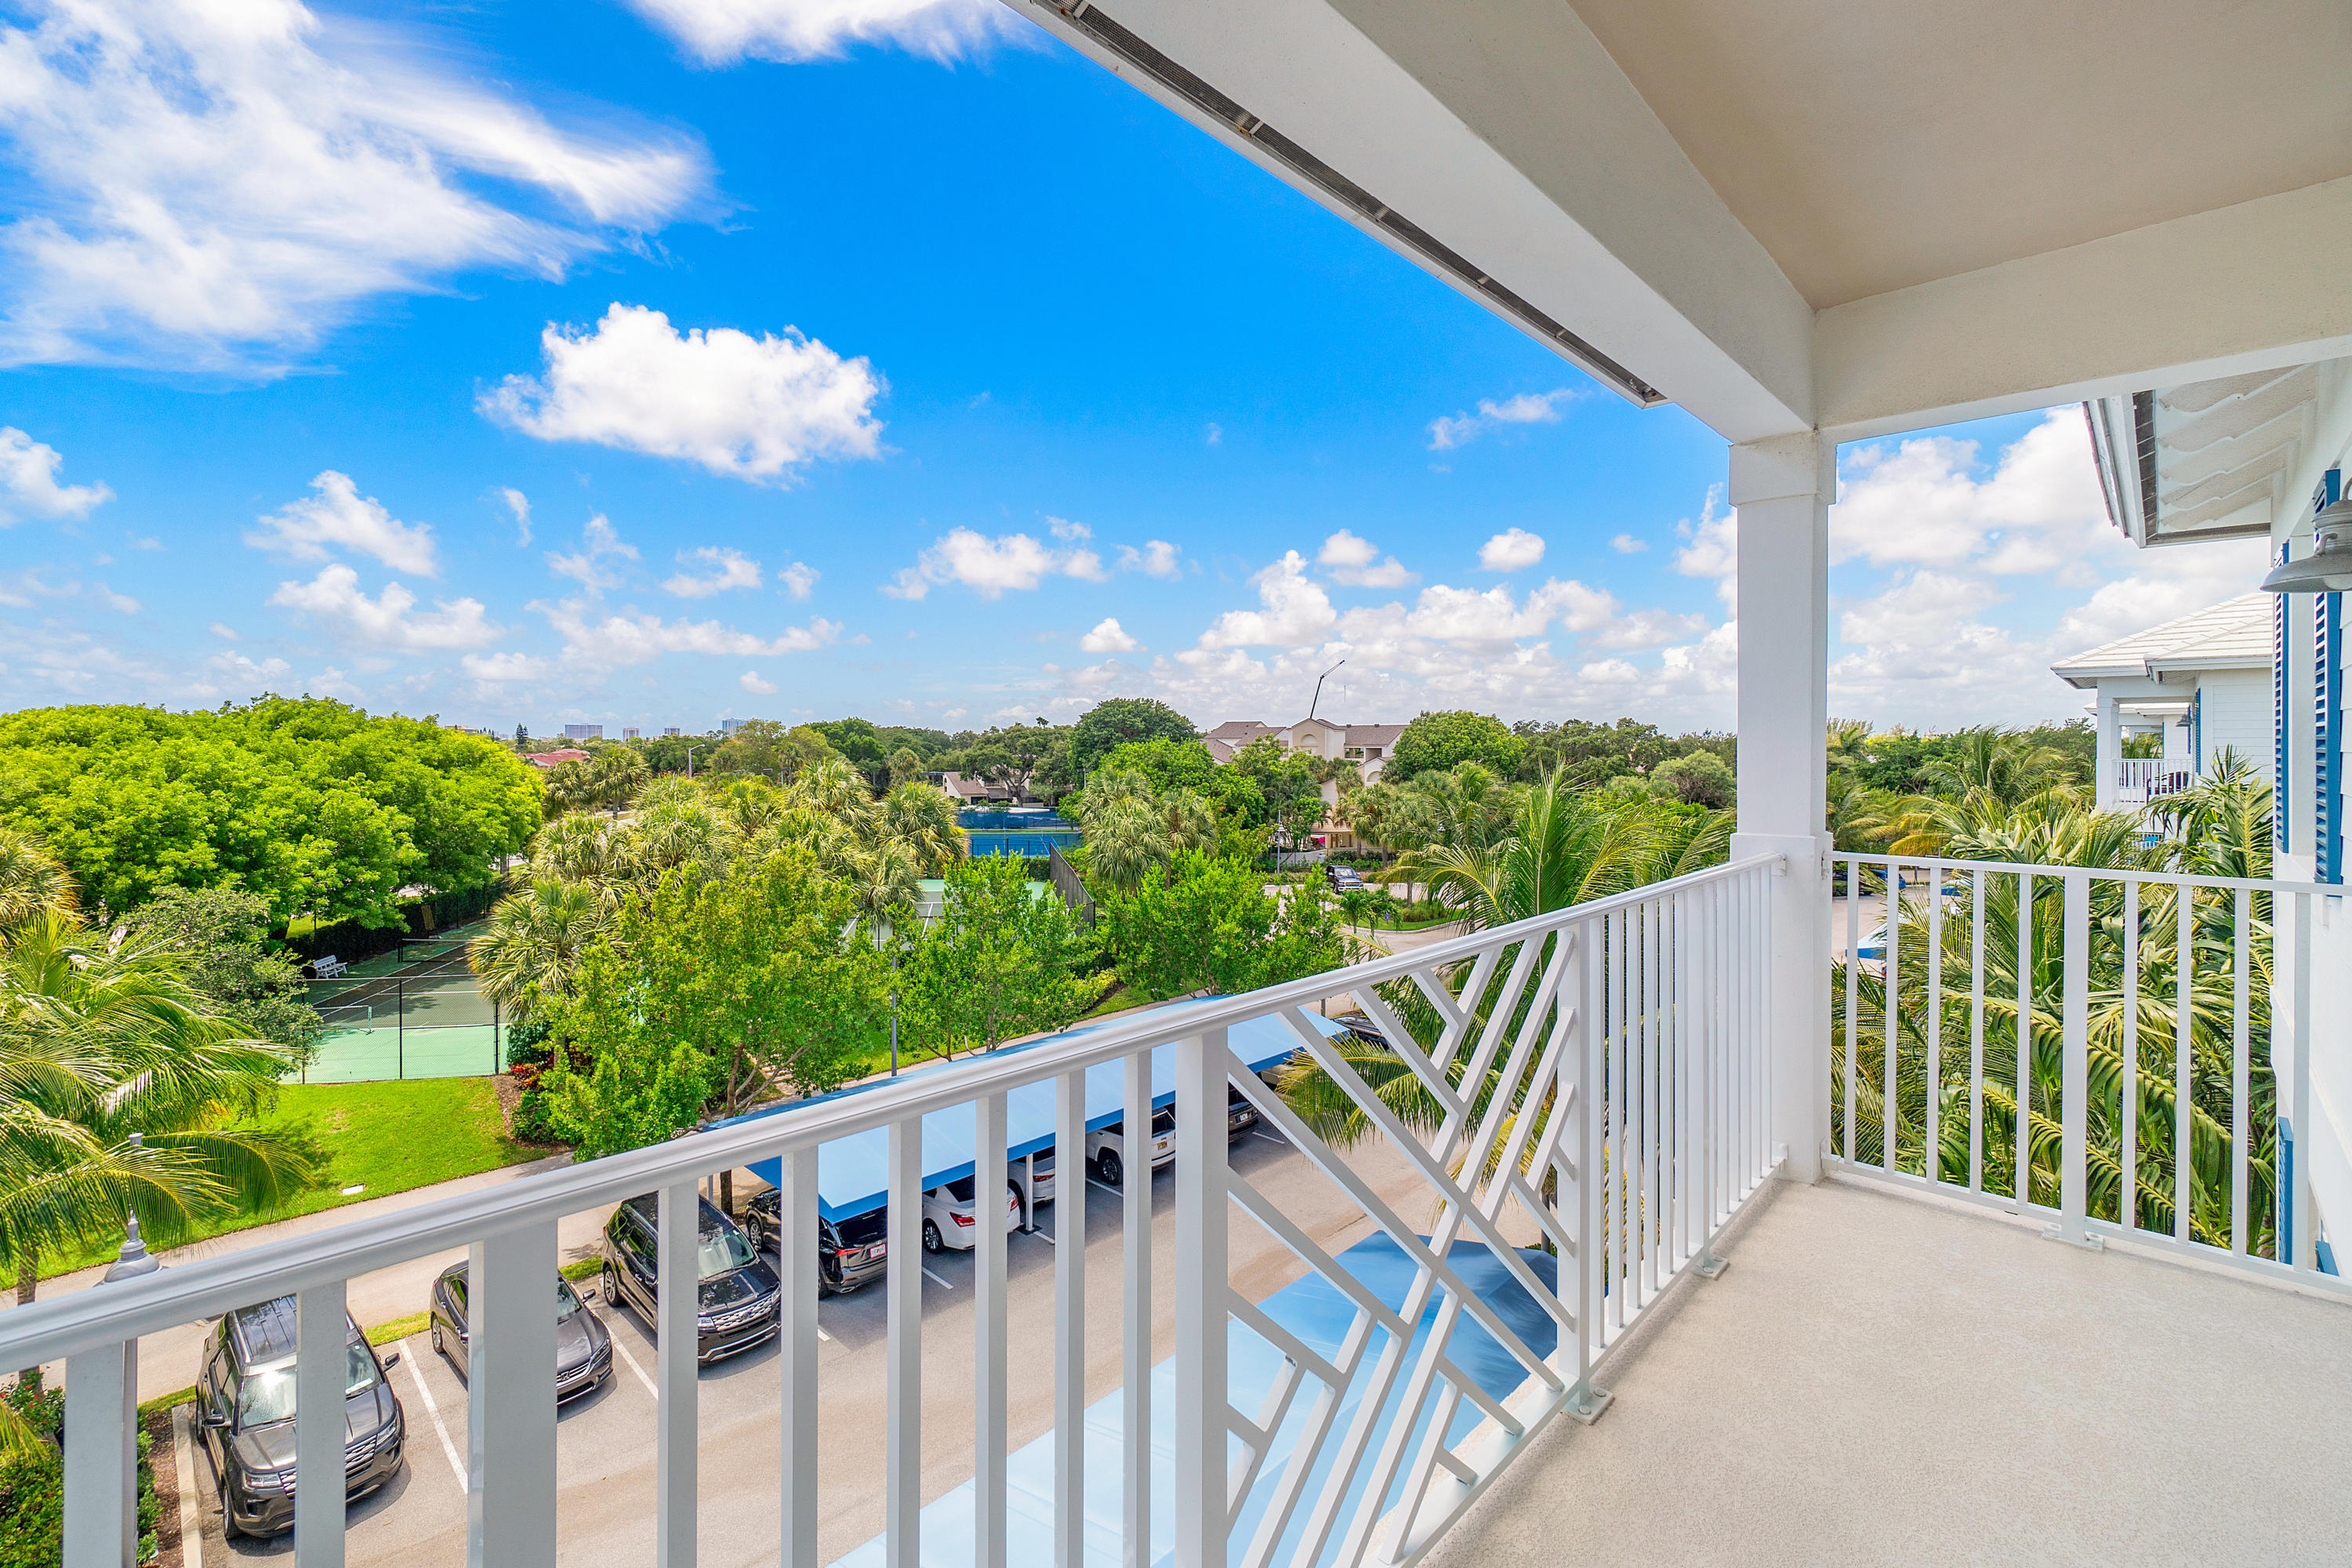 """A RARE FIND! RESORT STYLE CONDO, INCLUDING A 40 FT. BOAT SLIP AND JUST 1 MILE FROM THE BEACH!!! THIS IS BAY COLONY - JUNO BEACH'S MOST SOUGHT AFTER WATERFRONT COMMUNITY ON THE INTRACOASTAL WATERWAY. THIS 3BR/3BA PRESENTS LIKE A SHOW MODEL, WITH 9 FT. CEILINGS AND 2,175 SQFT-TOTAL OF LIGHT, BRIGHT, OPEN & AIRY  LIVING SPACE. WINDOWS & SLIDERS ARE IMPACT GLASS AND DECORATED WITH ELEGANT PLANTATION SHUTTERS WITH PANORAMIC VIEWS FROM 2 PRIVATE BALCONIES ON THE TOP 4TH FLOOR.  FRESH PAINTED WALLS ,WOOD LOOK TILE FLOOR, BOSCH STAINLESS STEEL APPLIANCES, BUILT-IN MICRO & OVEN, GRANITE COUNTERS & VANITY TOPS, OWNER UPGRADES ARE WALK-IN CUSTOM BUILT-IN CLOSETS, CUSTOM MURPHY BED FOR A CONVERTIBLE BEDROOM/DEN/OFFICE/BONUS ROOM. PRIVATE LOCKING STORAGE ROOM ONLY STEPS FROM THE FRONT DOOR. MORE OWNER UPGRADES INCLUDE: #31 PRIVATE BOAT SLIP WITH 12,000 POUND """"HI-TIDE"""" FOUR MOTOR BOAT LIFT (NEW $16,000), COMMON CHARGE PER MONTH FOR BOAT SLIP IS $90 (INCLUDES WATER, ELECTRIC & DOCK BOX). NEW RHEEM ELECTRIC WATER HEATER (3/2021), NEW AIR CONDITIONING SYSTEM UV BLUE LIGHT AND DUCT CLEAN & SEAL PROTECTIVE COATING (10/2020). OWNER MAY CONSIDER SELLING FURNISHINGS (*EXCLUDING MASTER BEDROOM SET) AT AN AGREED PRICE, SHOULD A TURNKEY SALE BE DESIRED."""